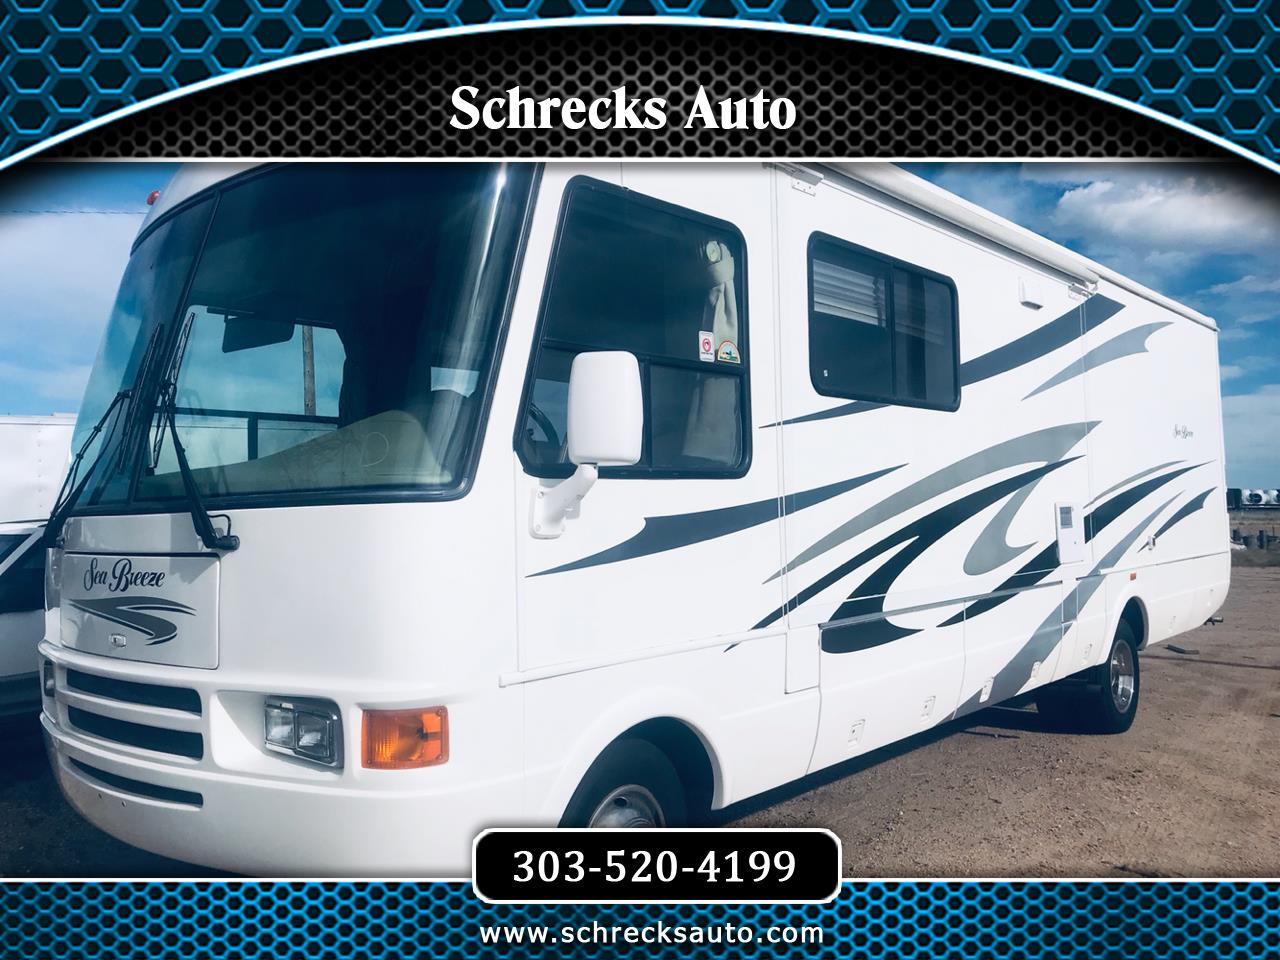 2005 Ford Super Duty F-550 Motorhome